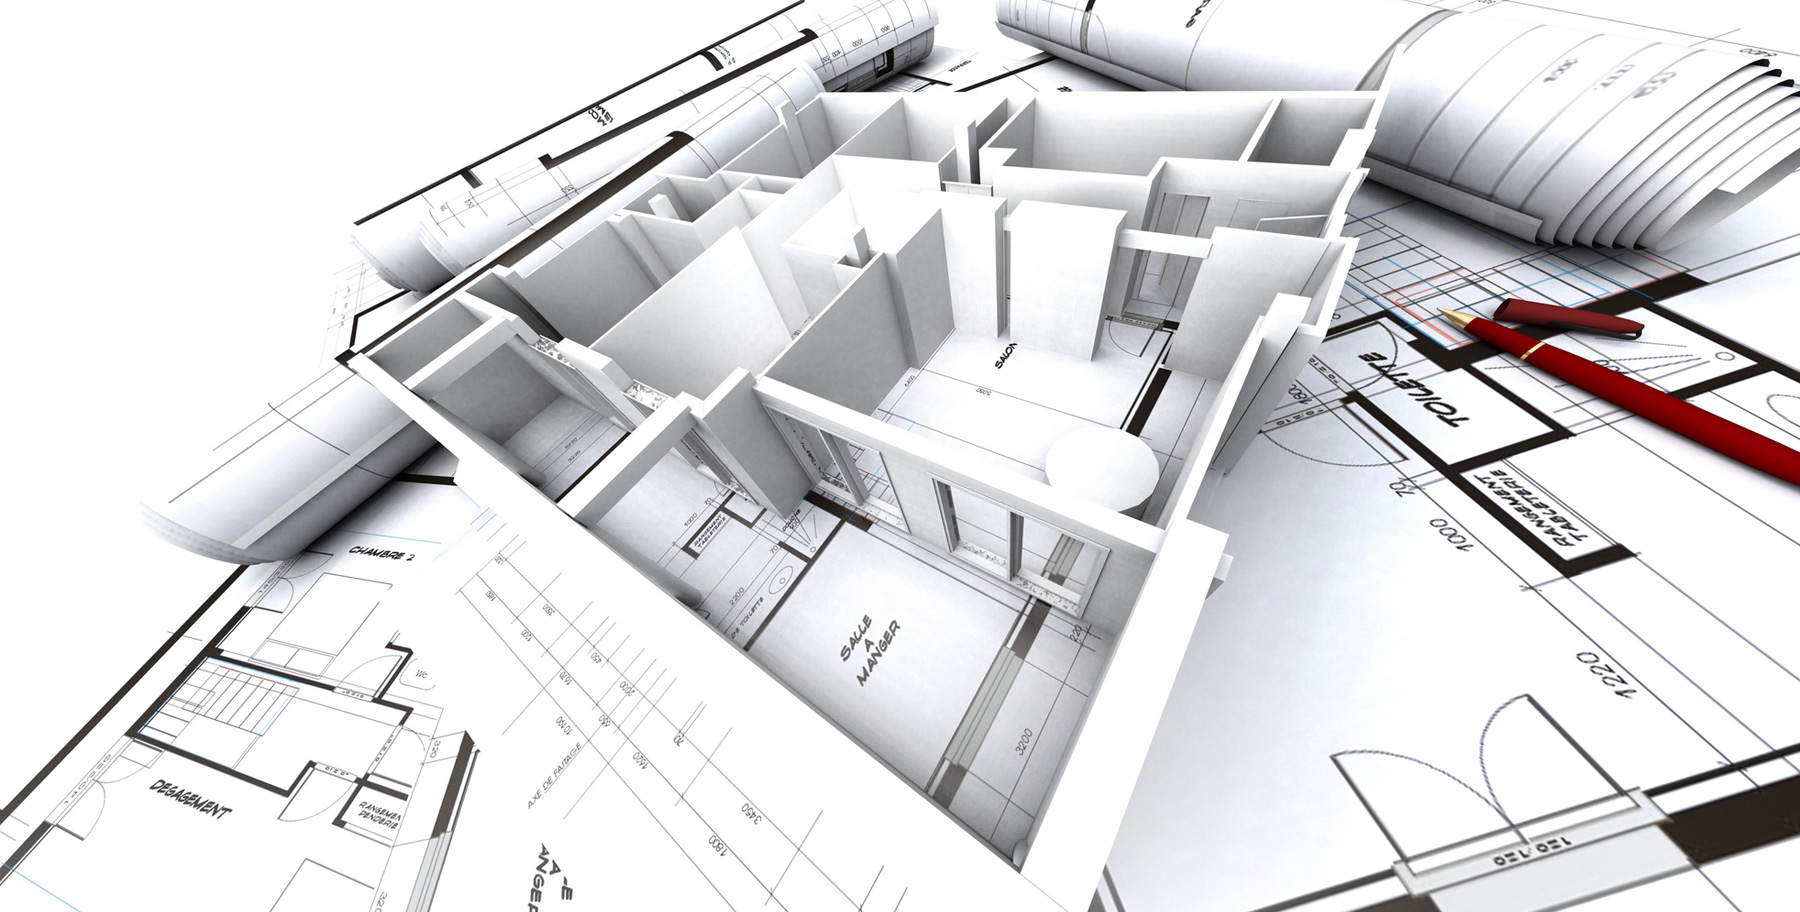 plans completed for your local authorities - Architectural Desings